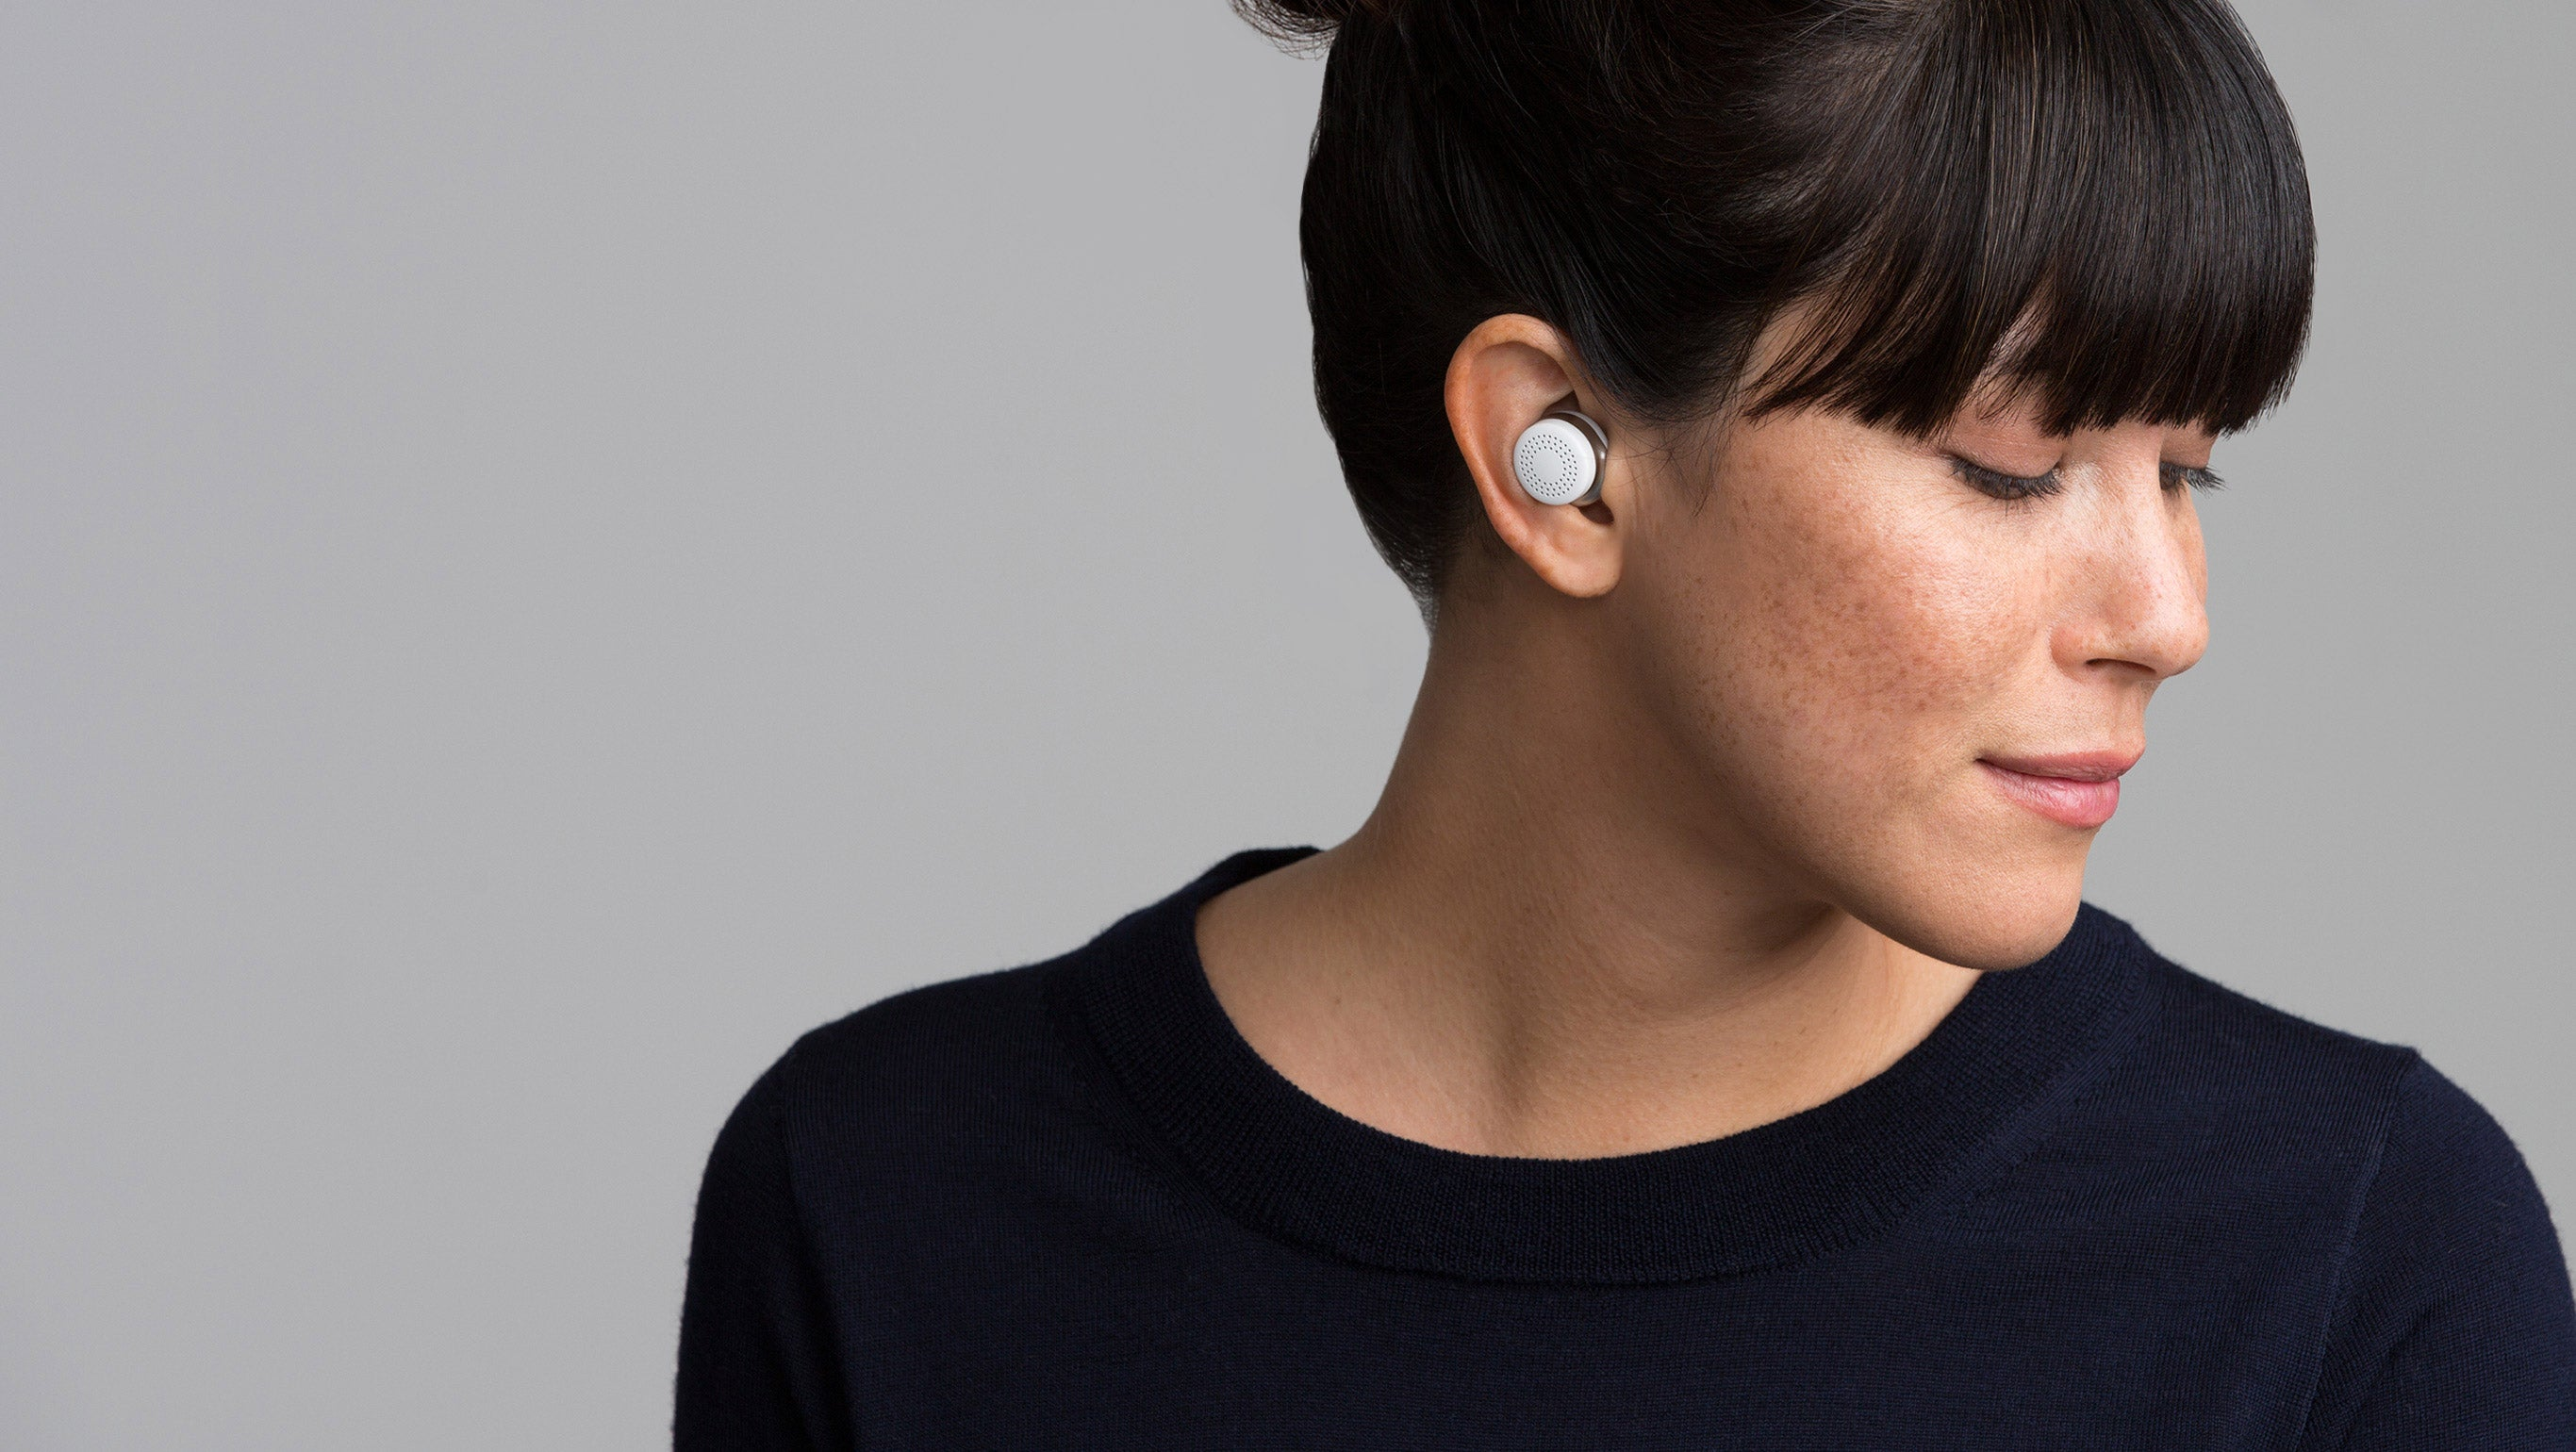 Woman smiling and using Here One earbuds